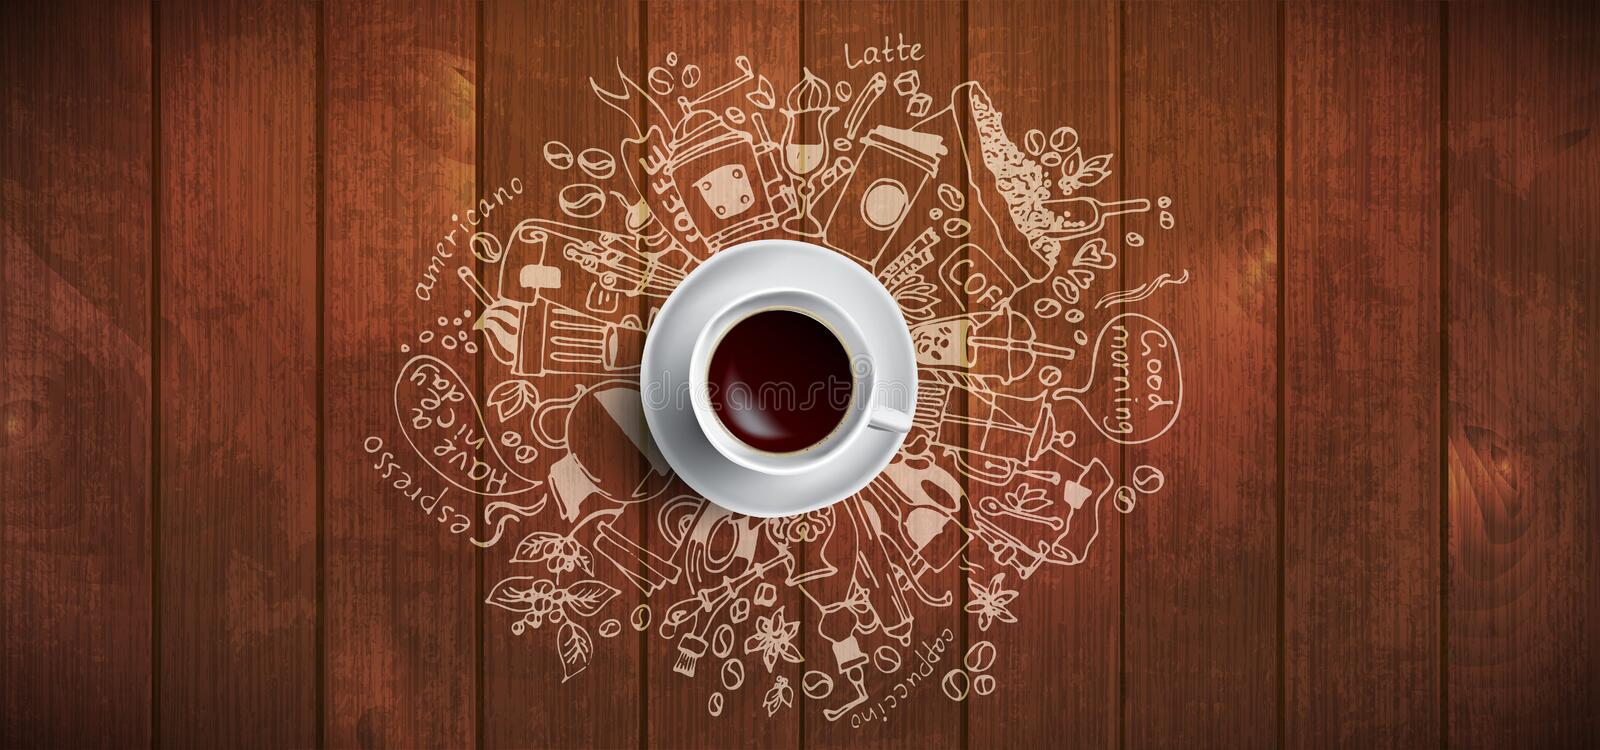 Coffee concept on wooden background - white coffee cup, top view with doodle illustration about coffee, beans, morning vector illustration